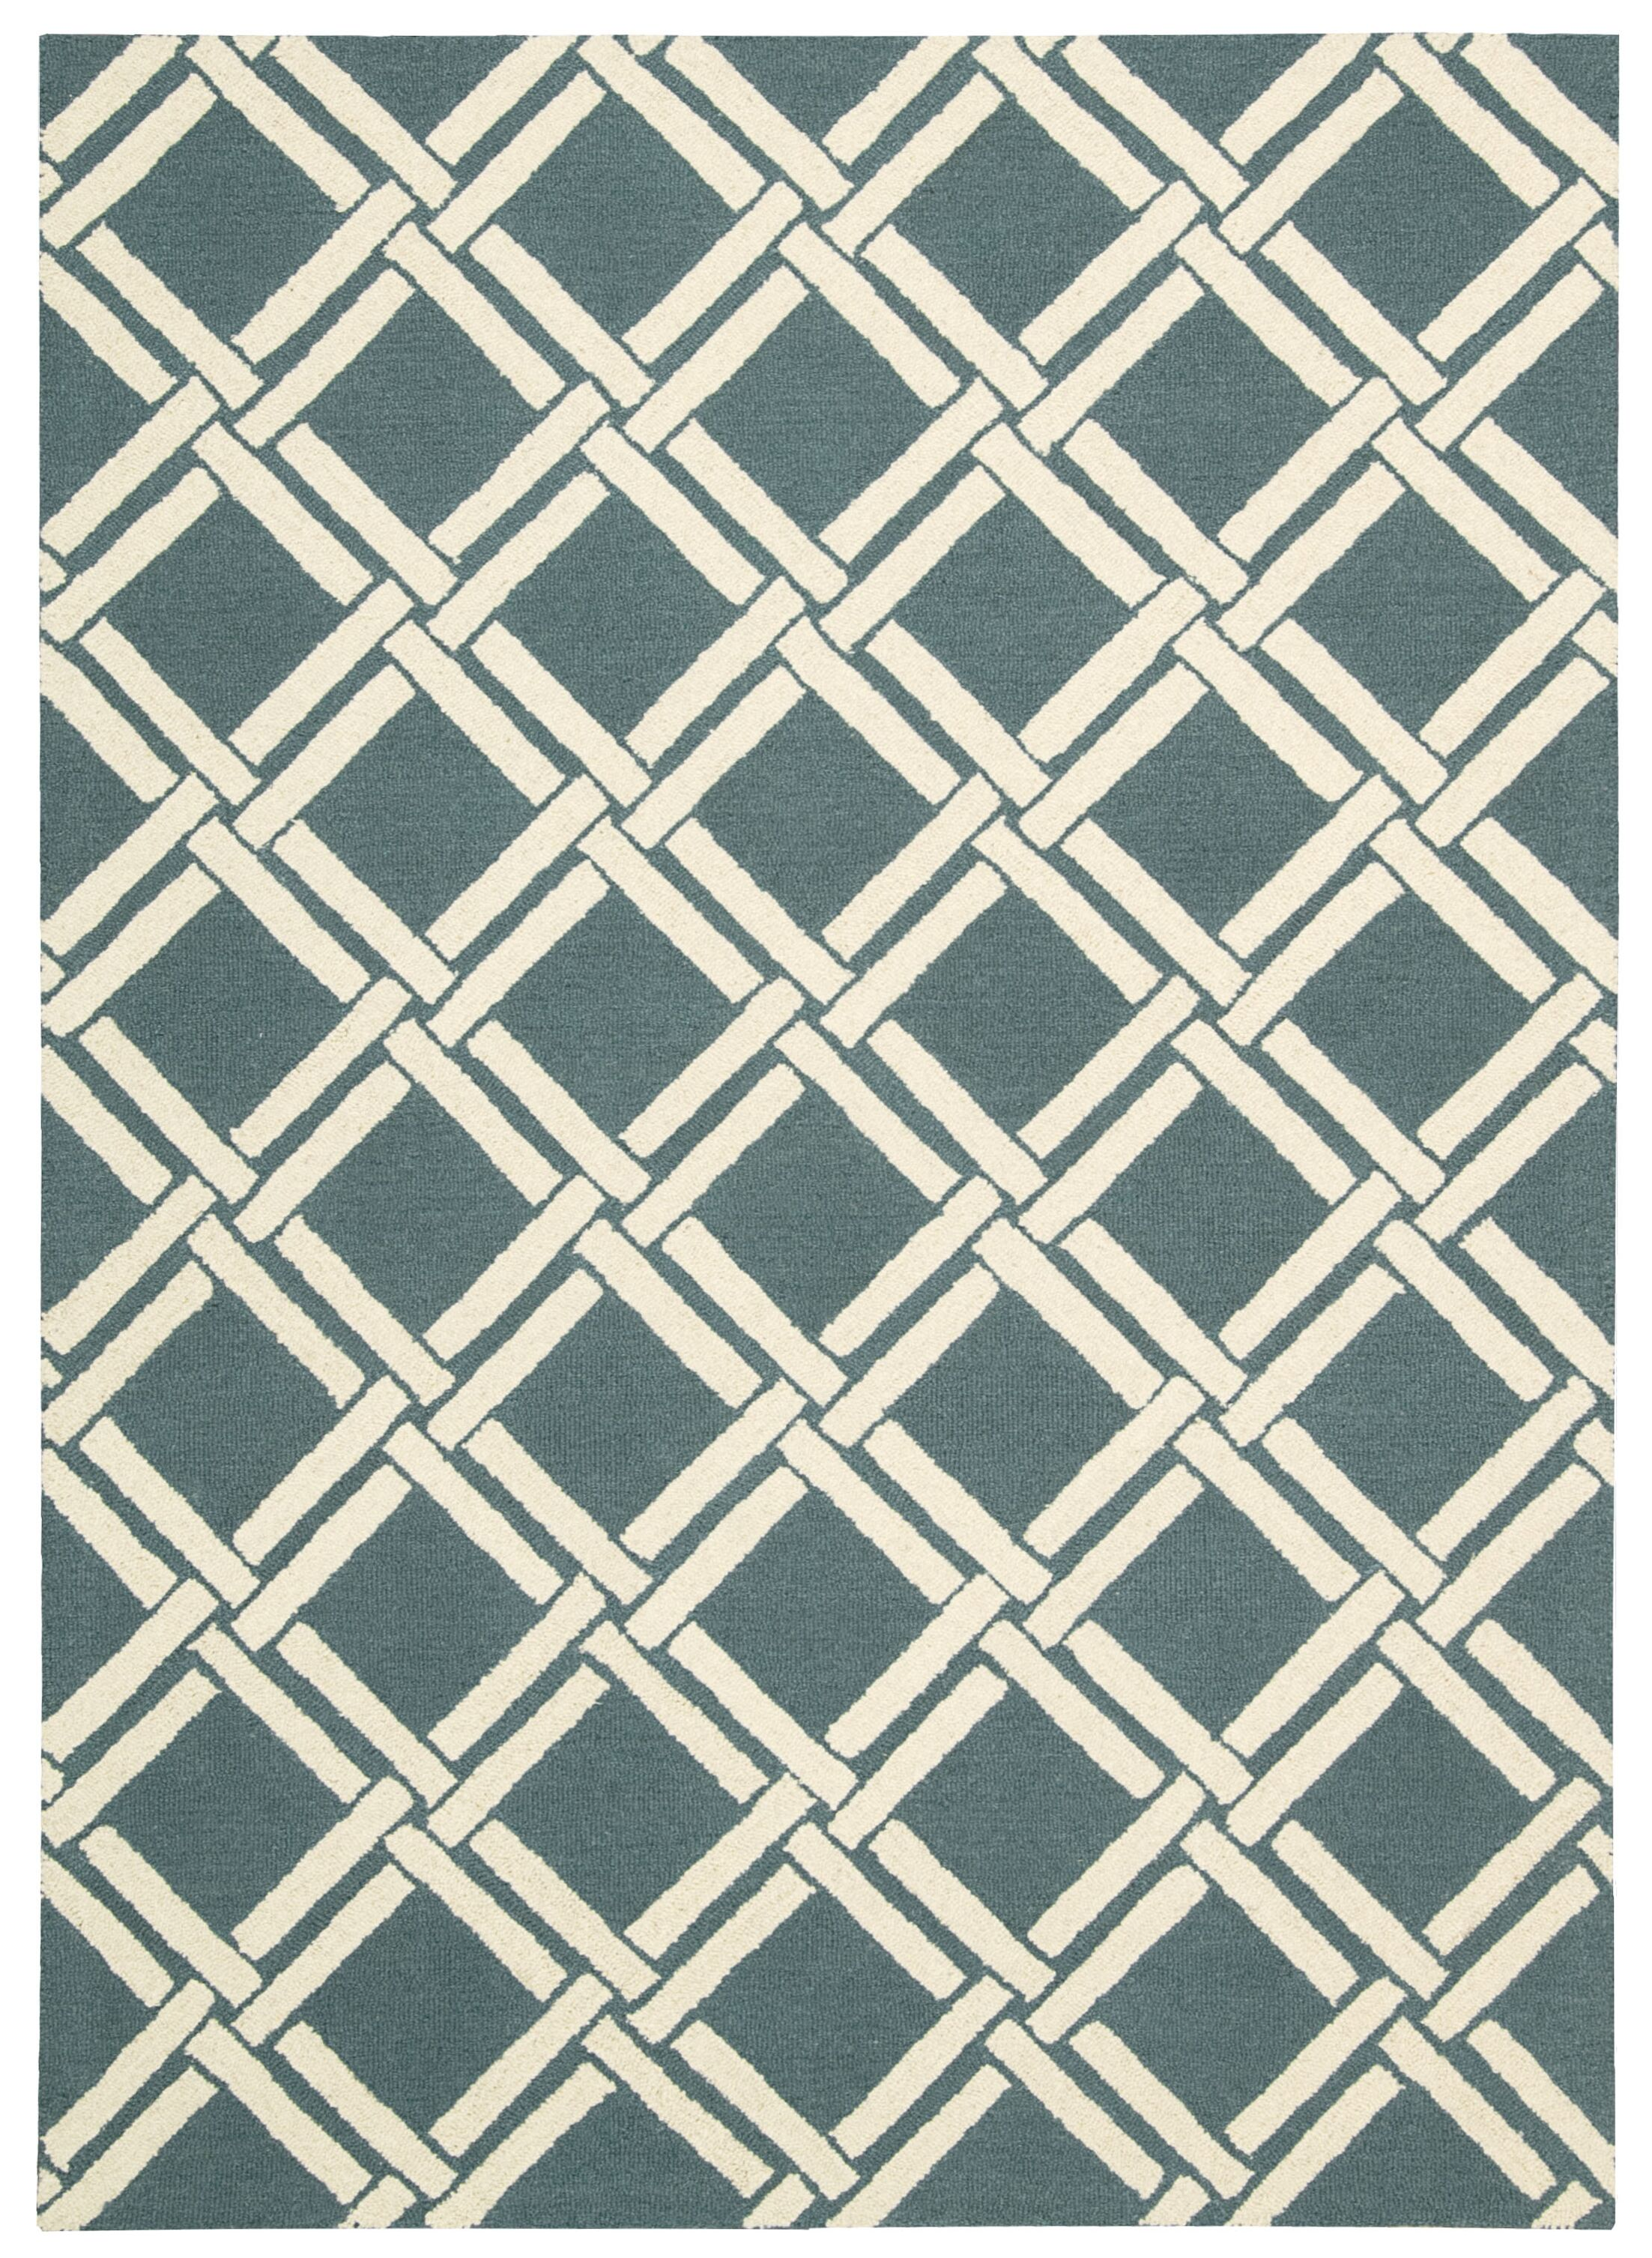 Hulings Hand-Knotted Teal/Ivory Area Rug Rug Size: Rectangle 7'6